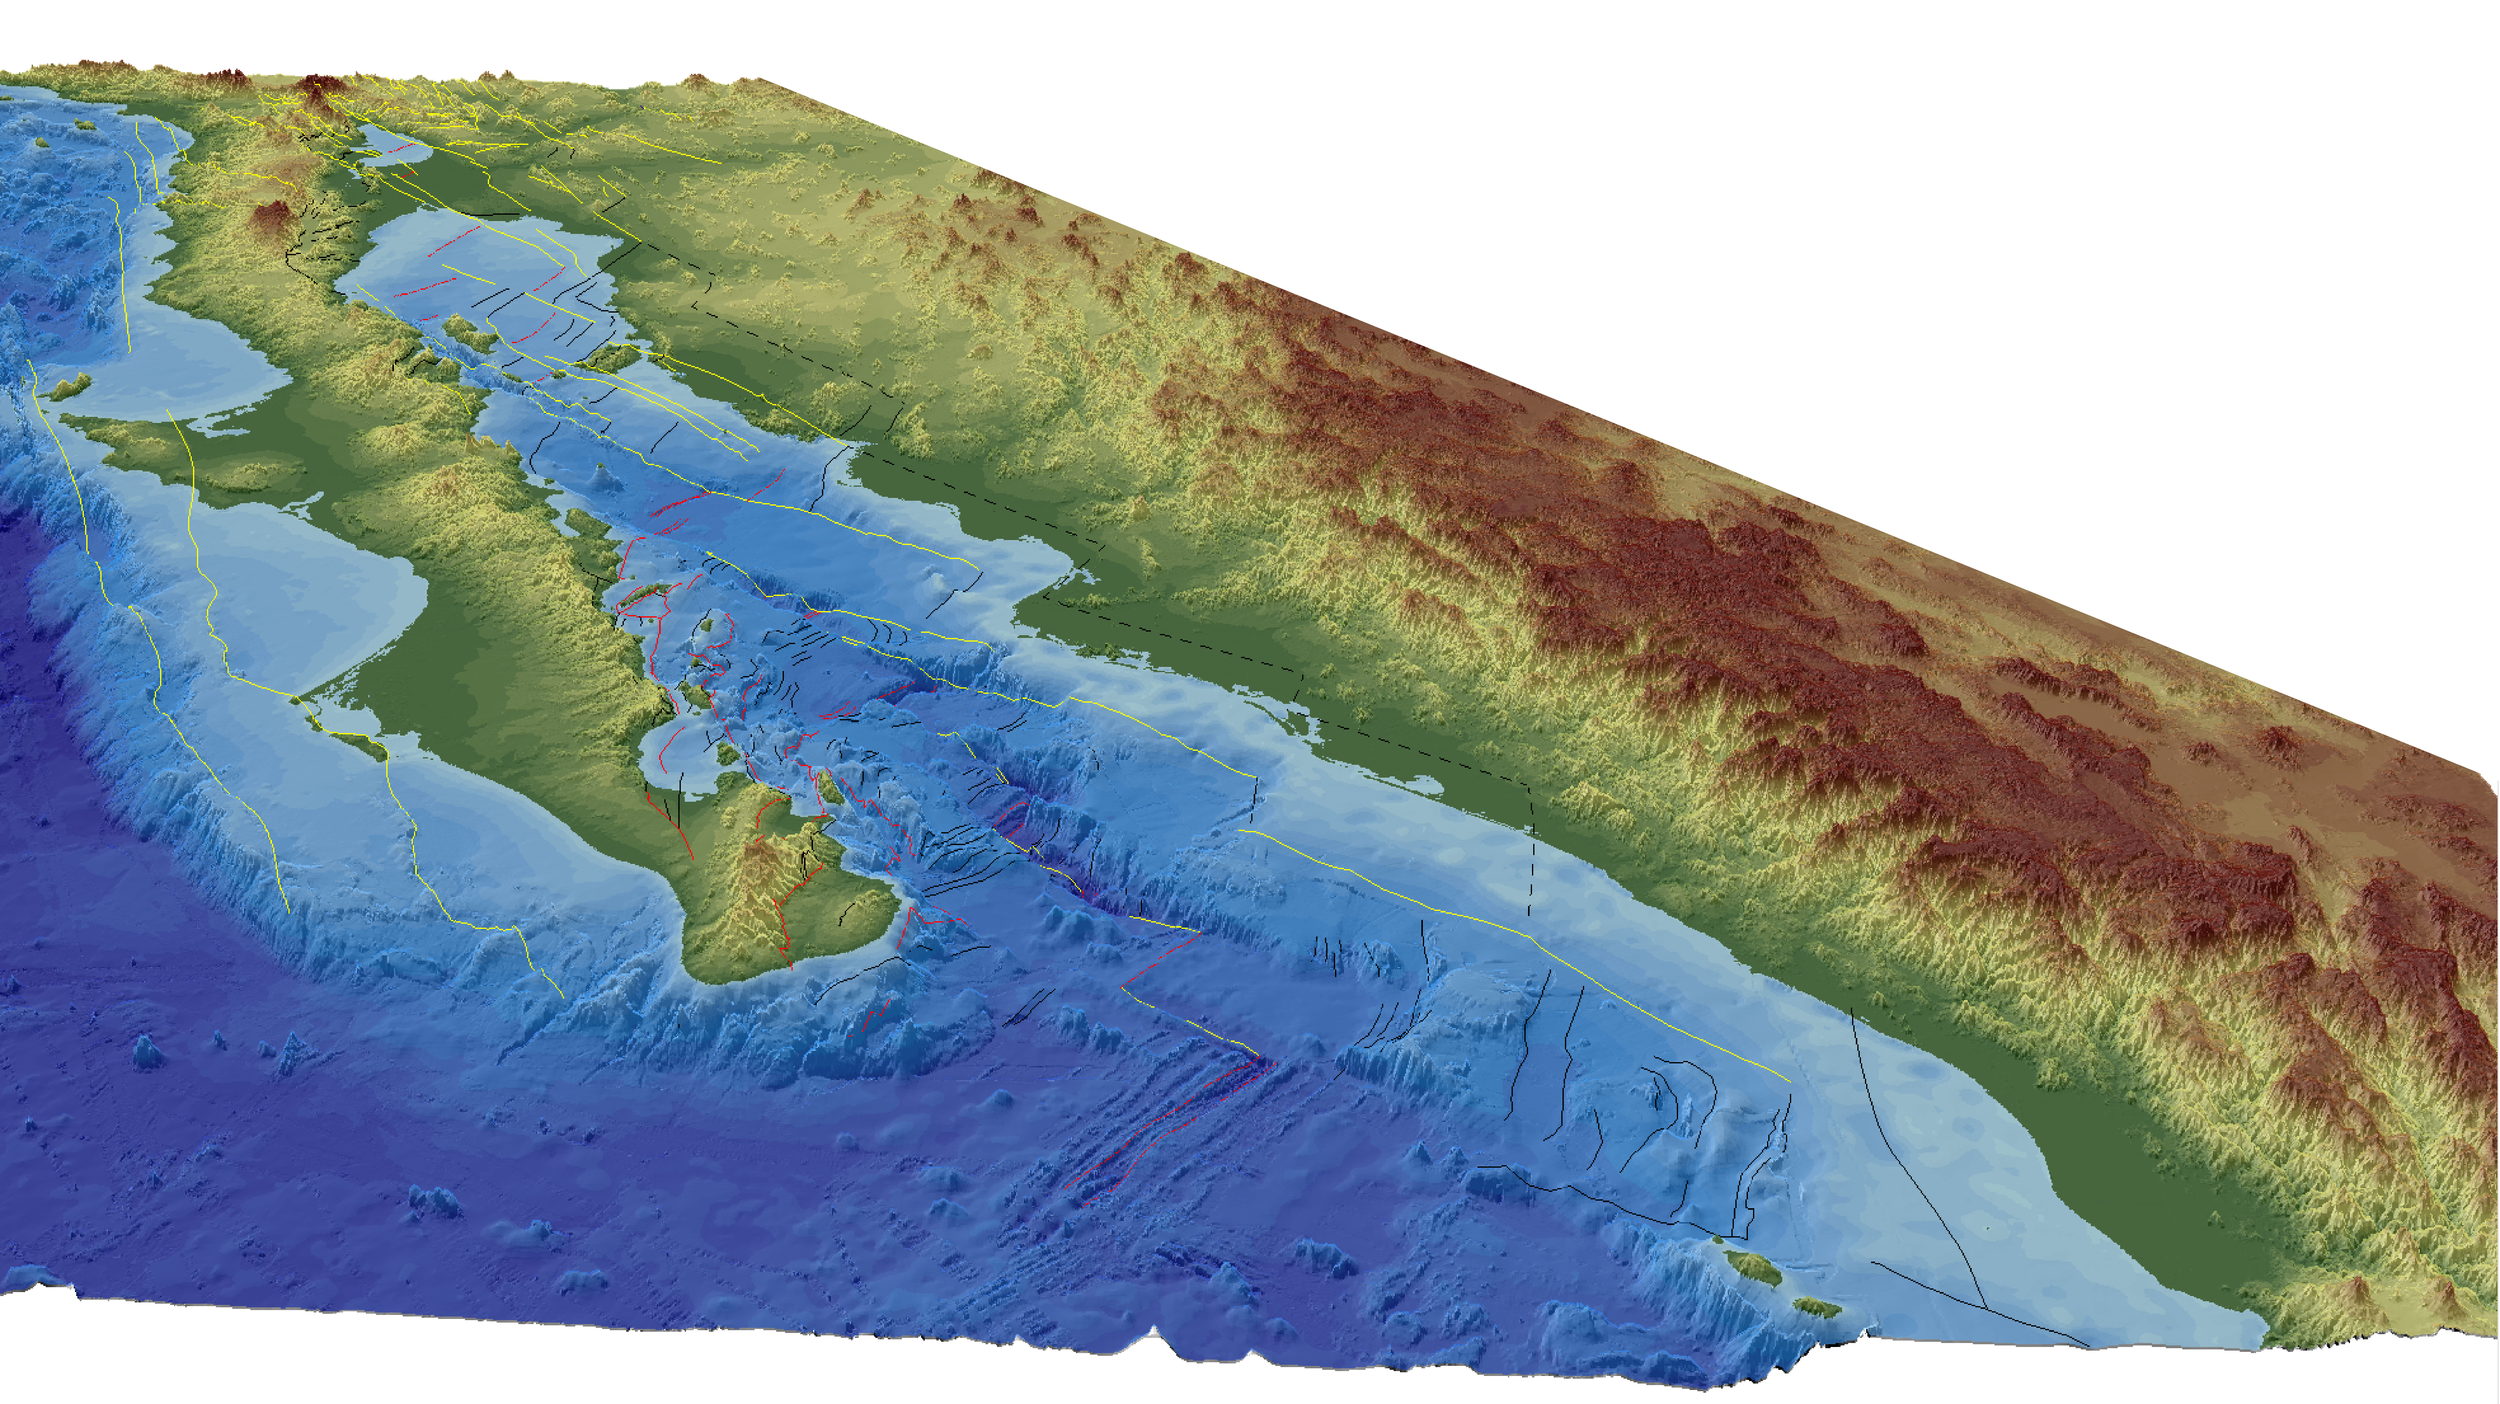 Perspective view of the Gulf of California-Salton Trough oblique rift. Structures responsible for Miocene to Present plate boundary deformation are shown.